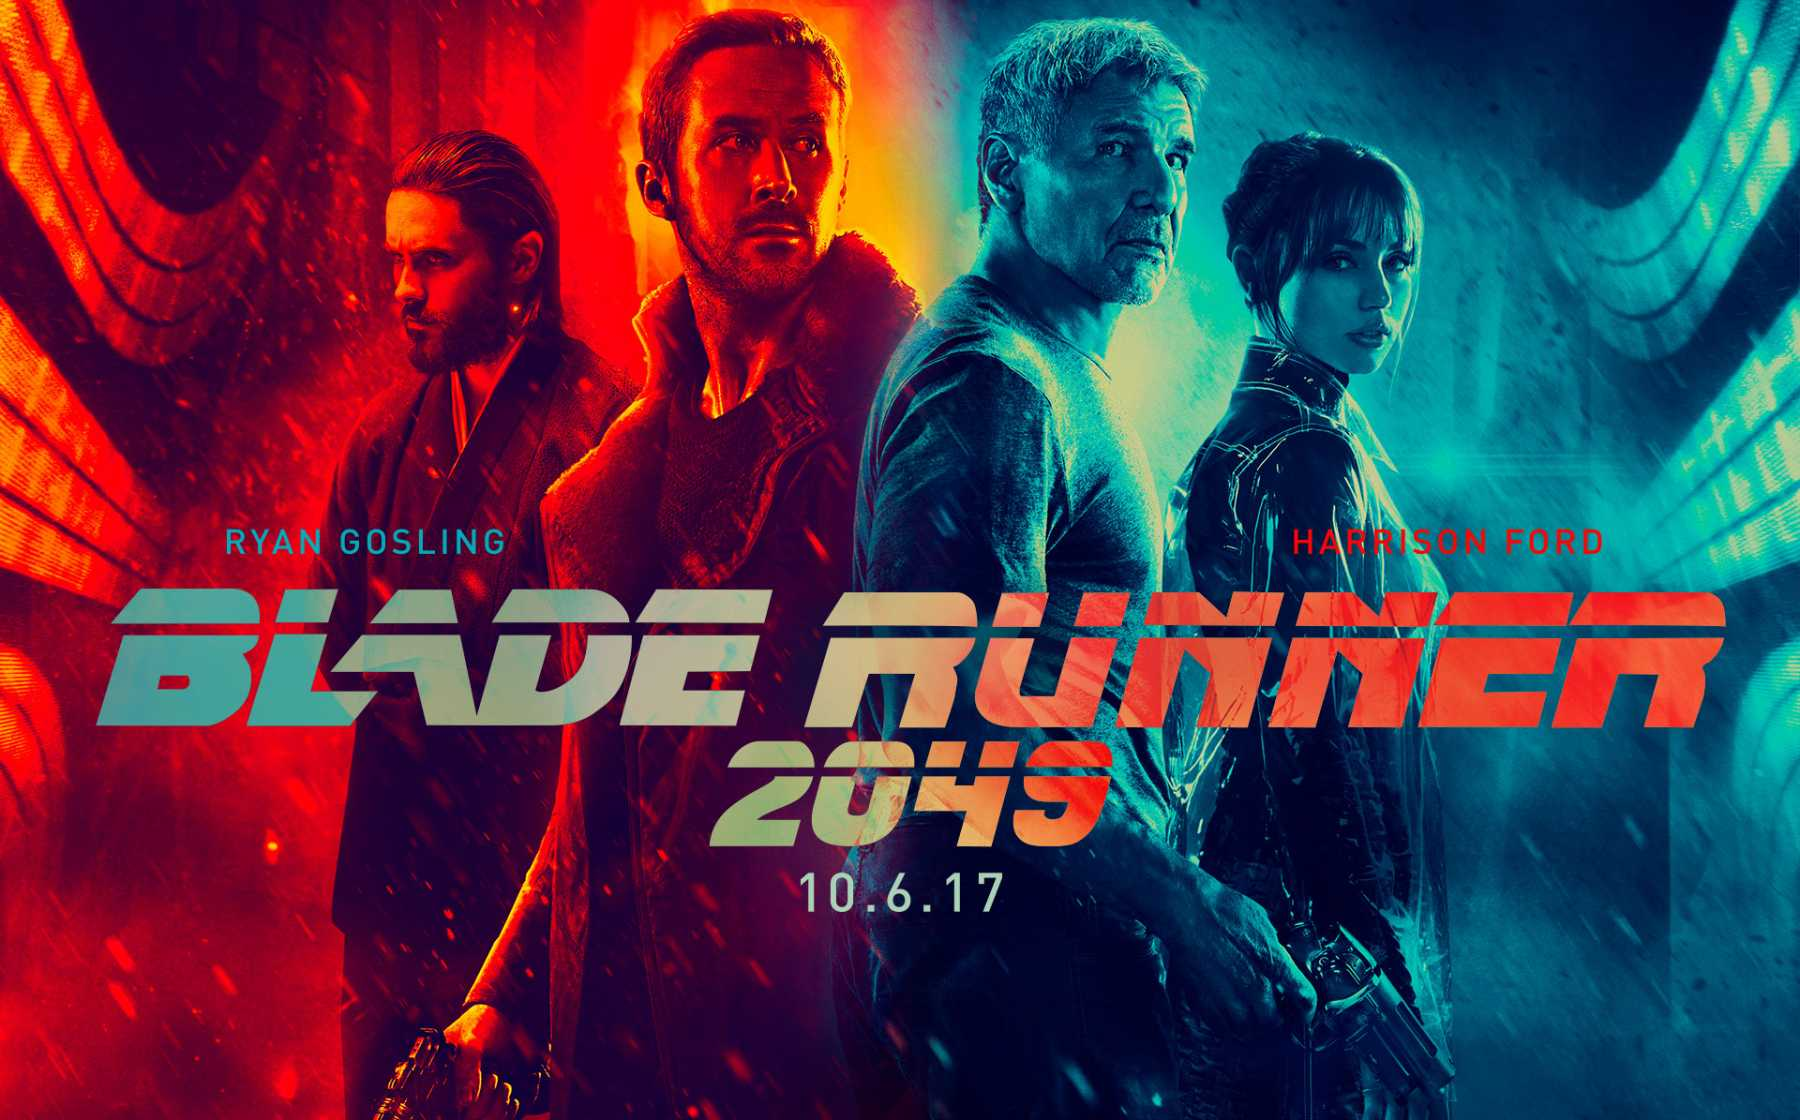 'Blade Runner 2049' Is Possibly The Best Film Of 2017 | Blade Runner